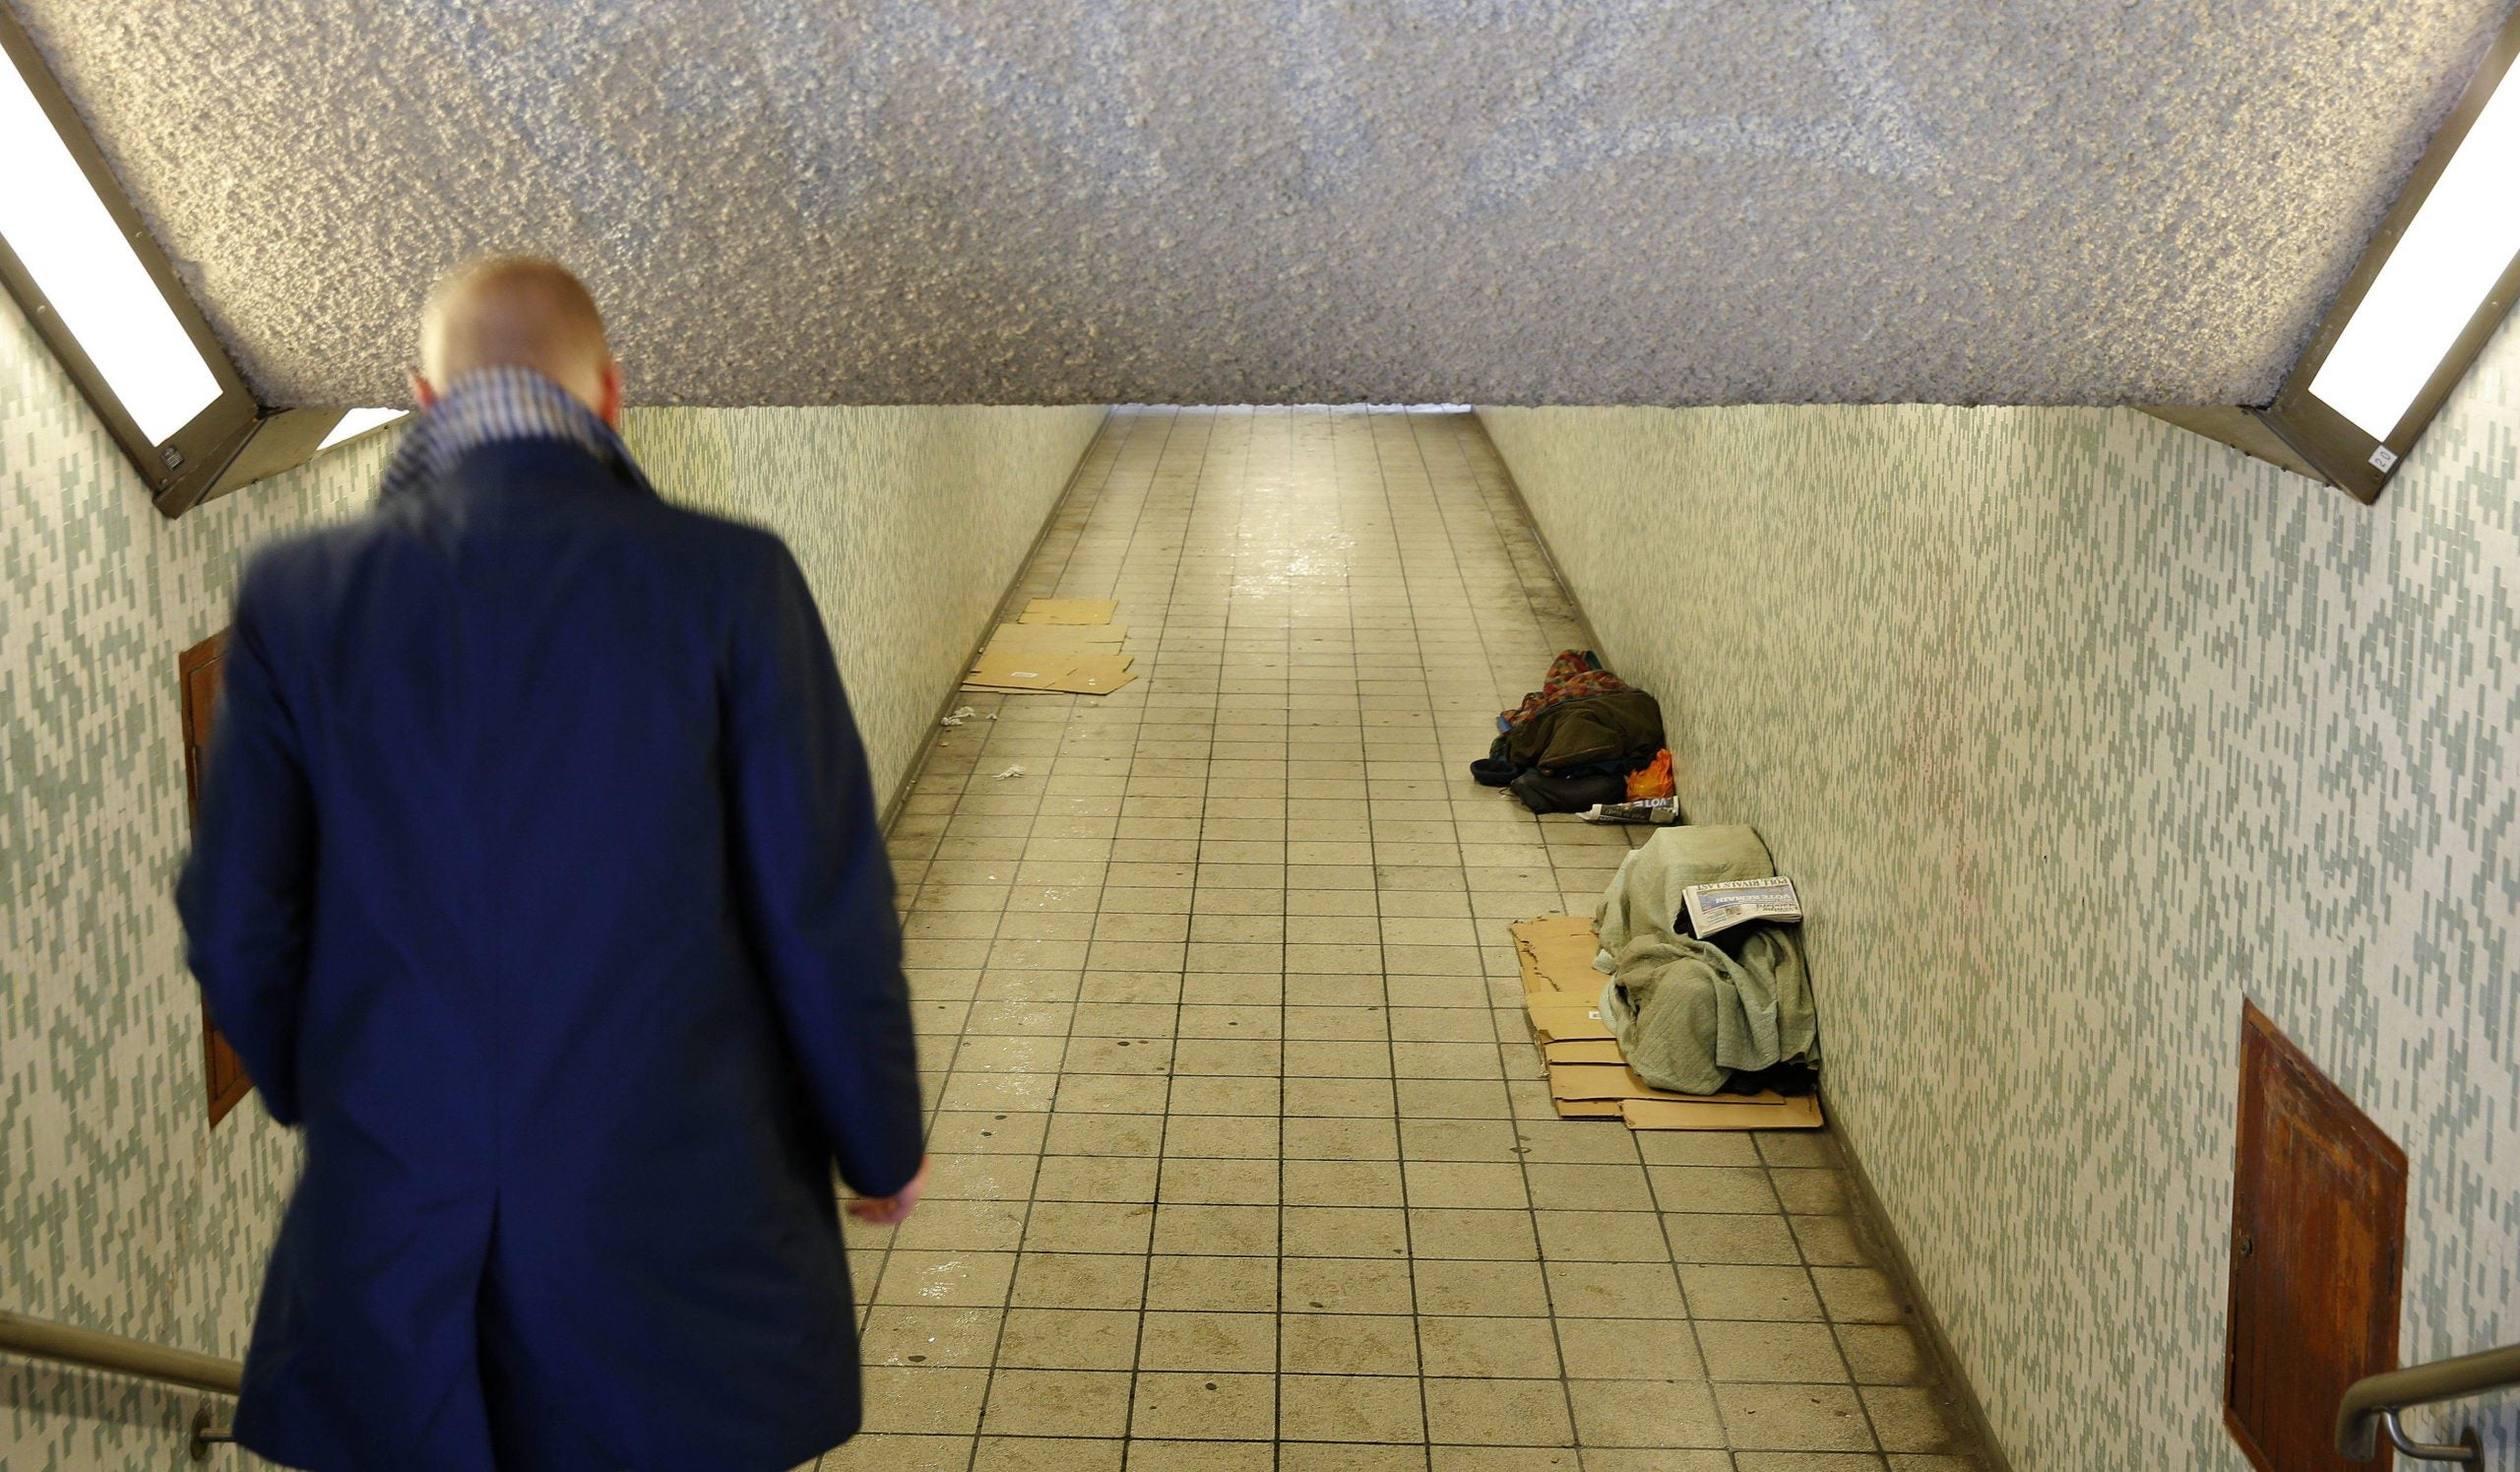 Britain is heading for a homelessness crisis - how to stop it